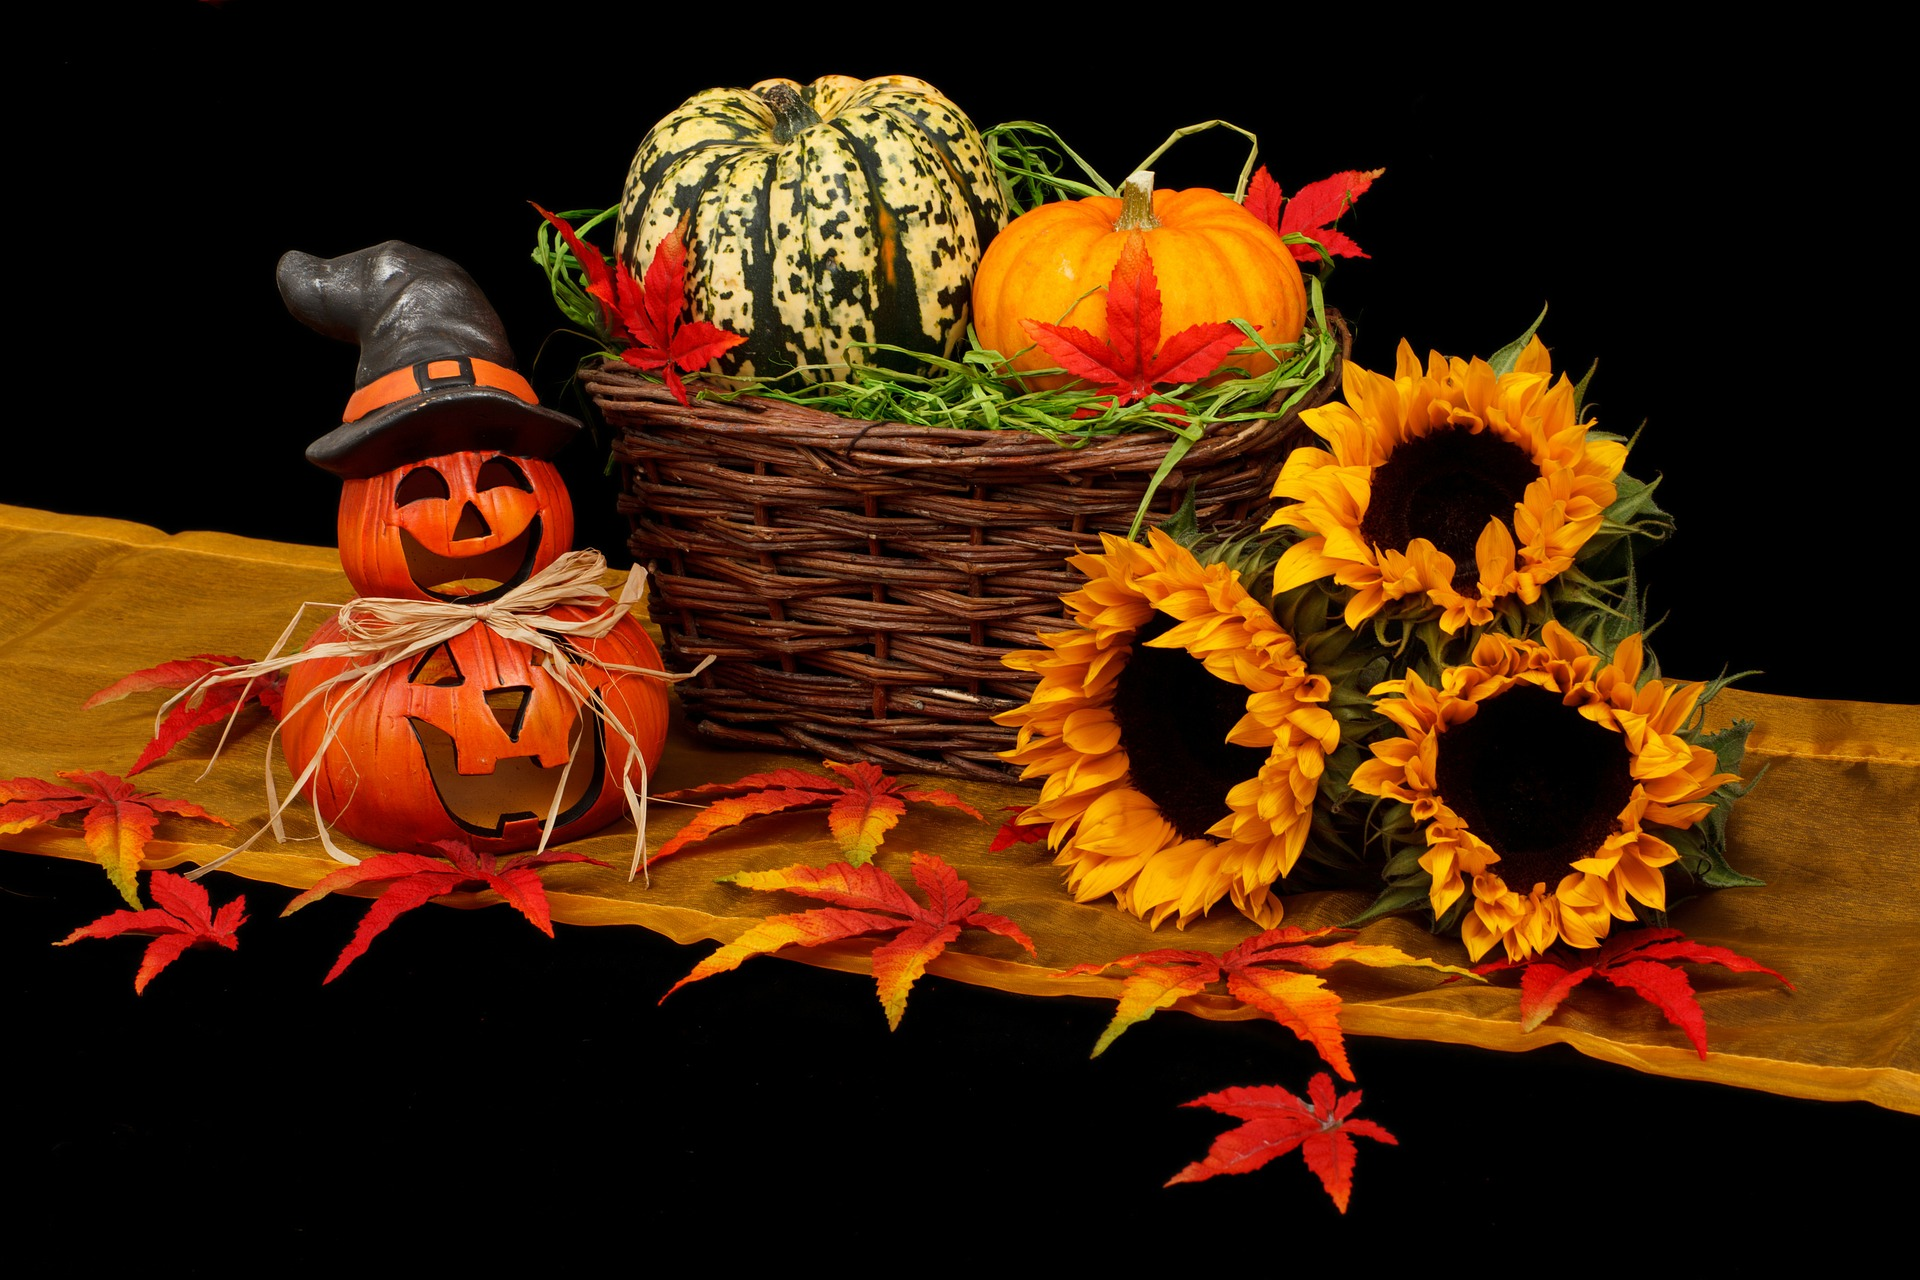 sunflowers and pumpkins in a basket